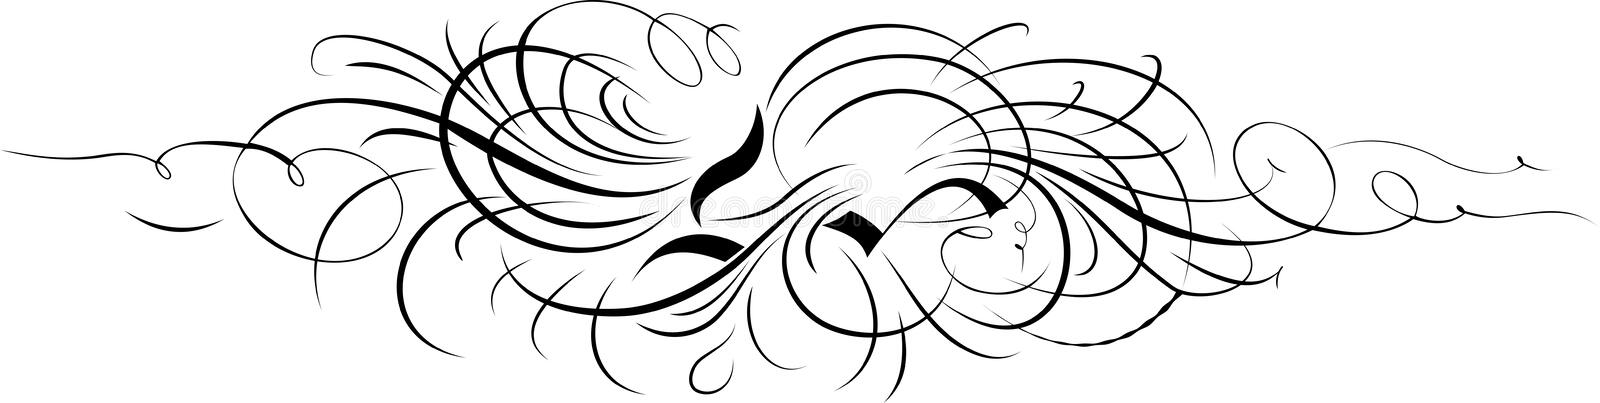 separat calligraphykurvprydnad stock illustrationer